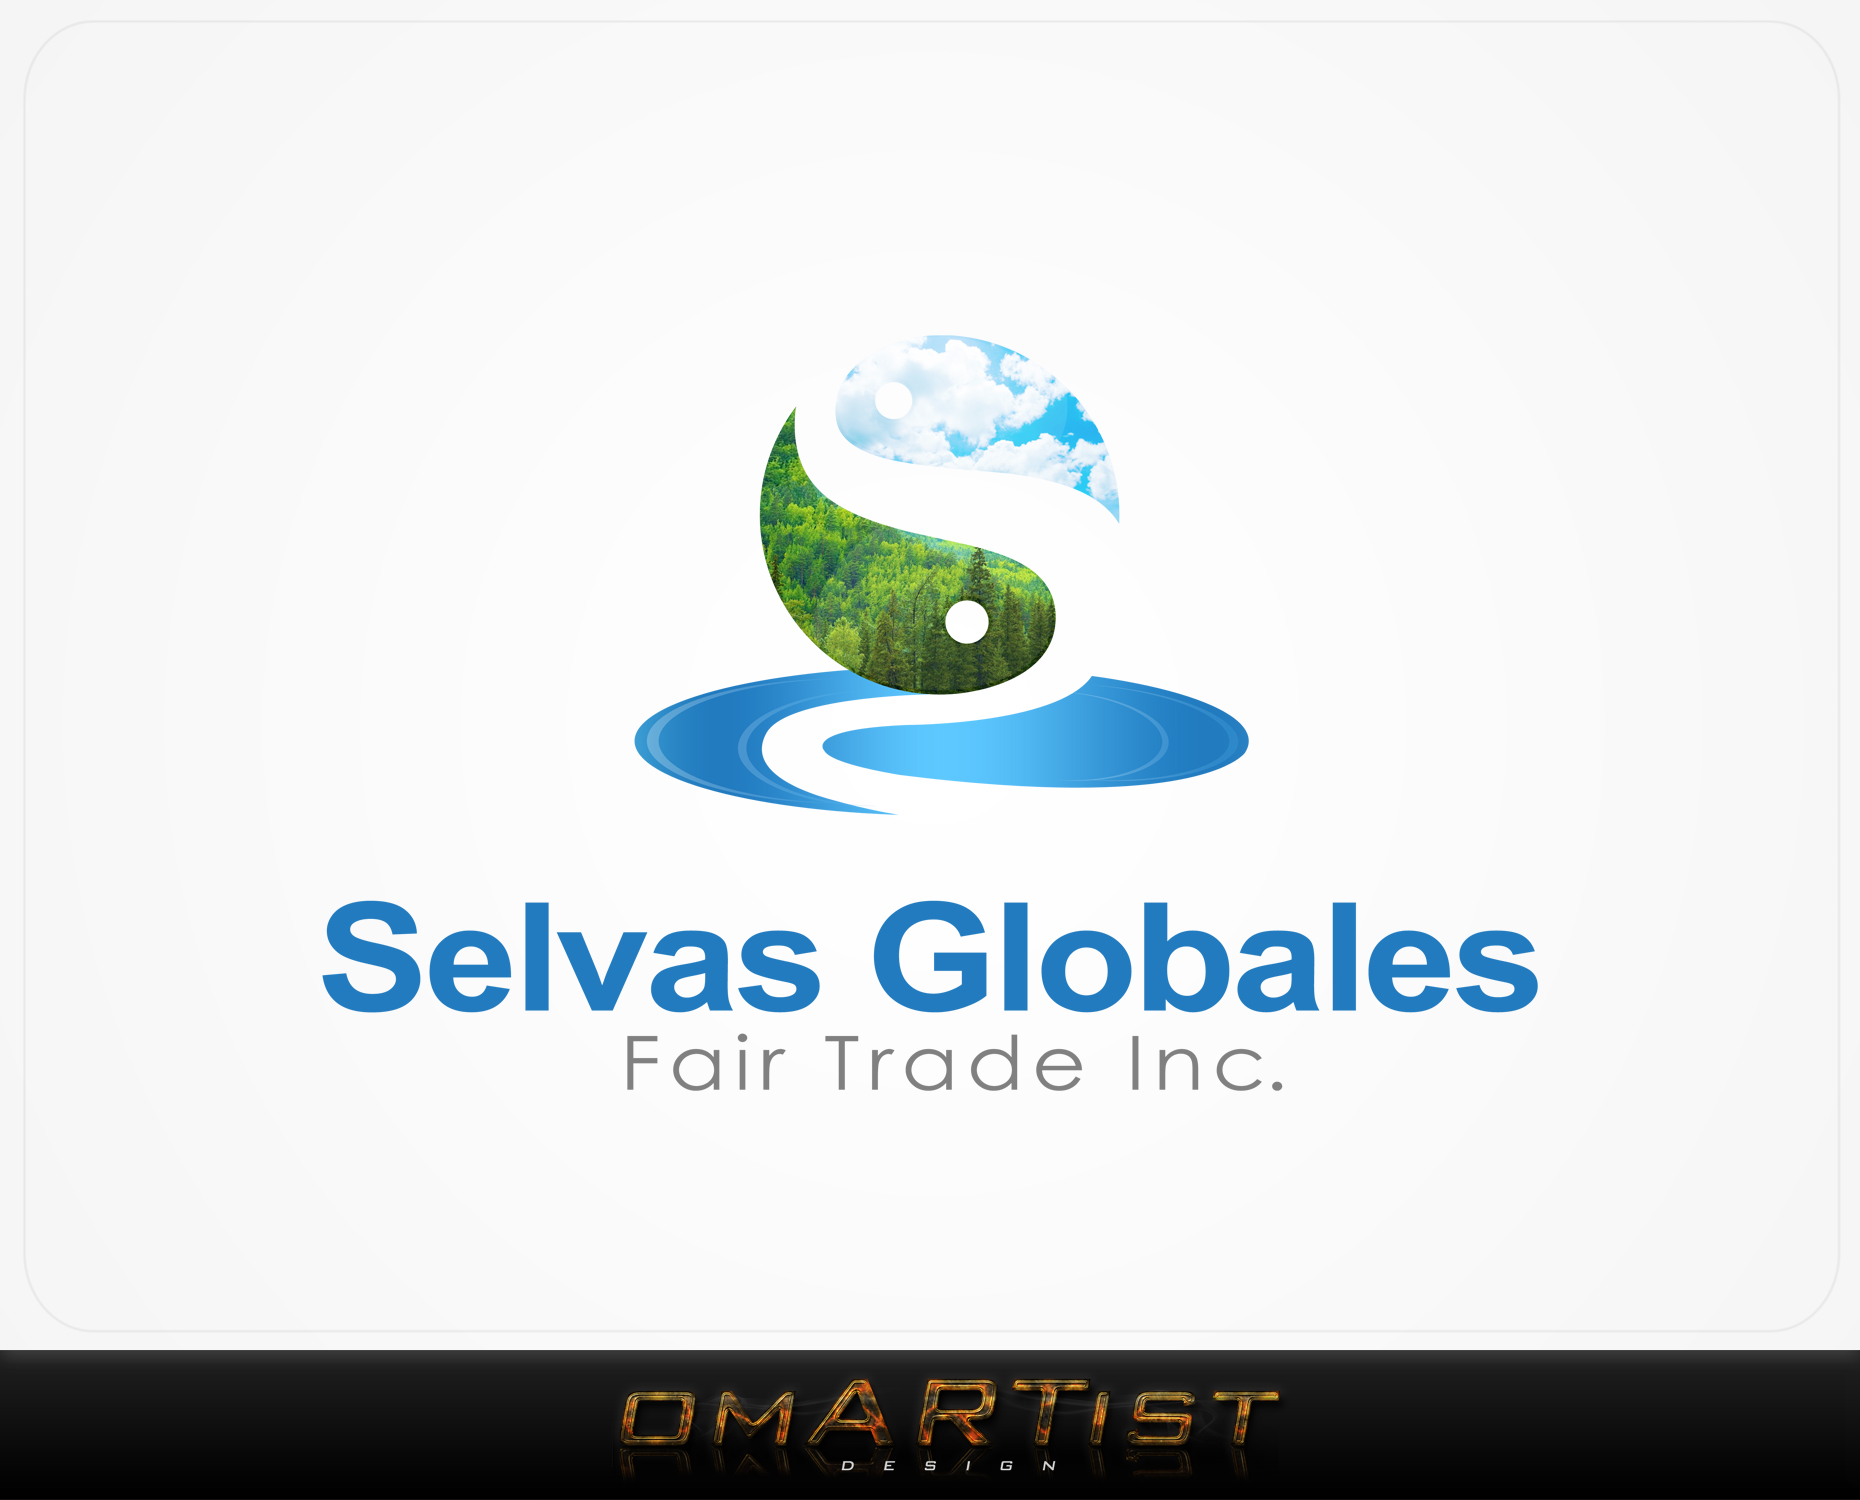 Logo Design by omARTist - Entry No. 109 in the Logo Design Contest Captivating Logo Design for Selvas Globales Fair Trade Inc..